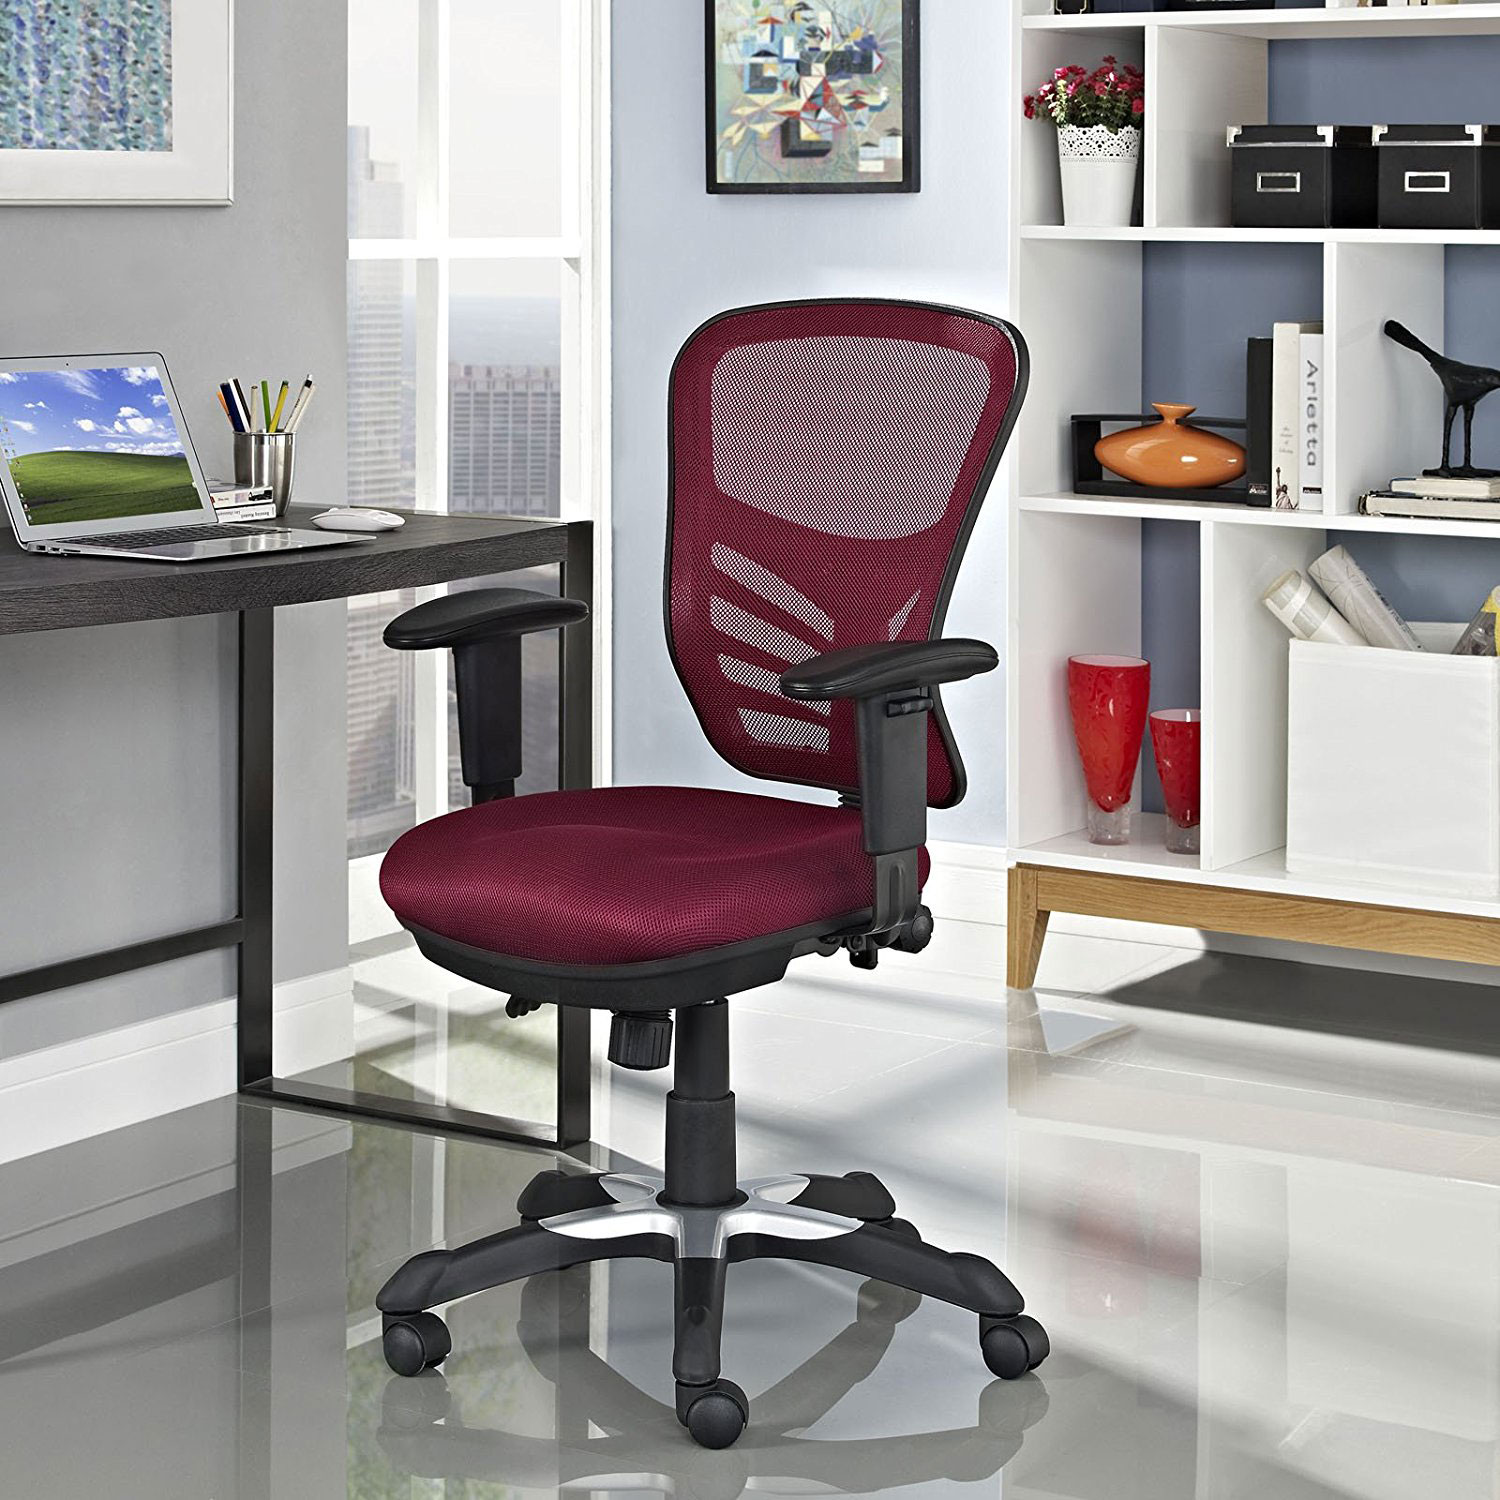 Modway Articulate Office Chair